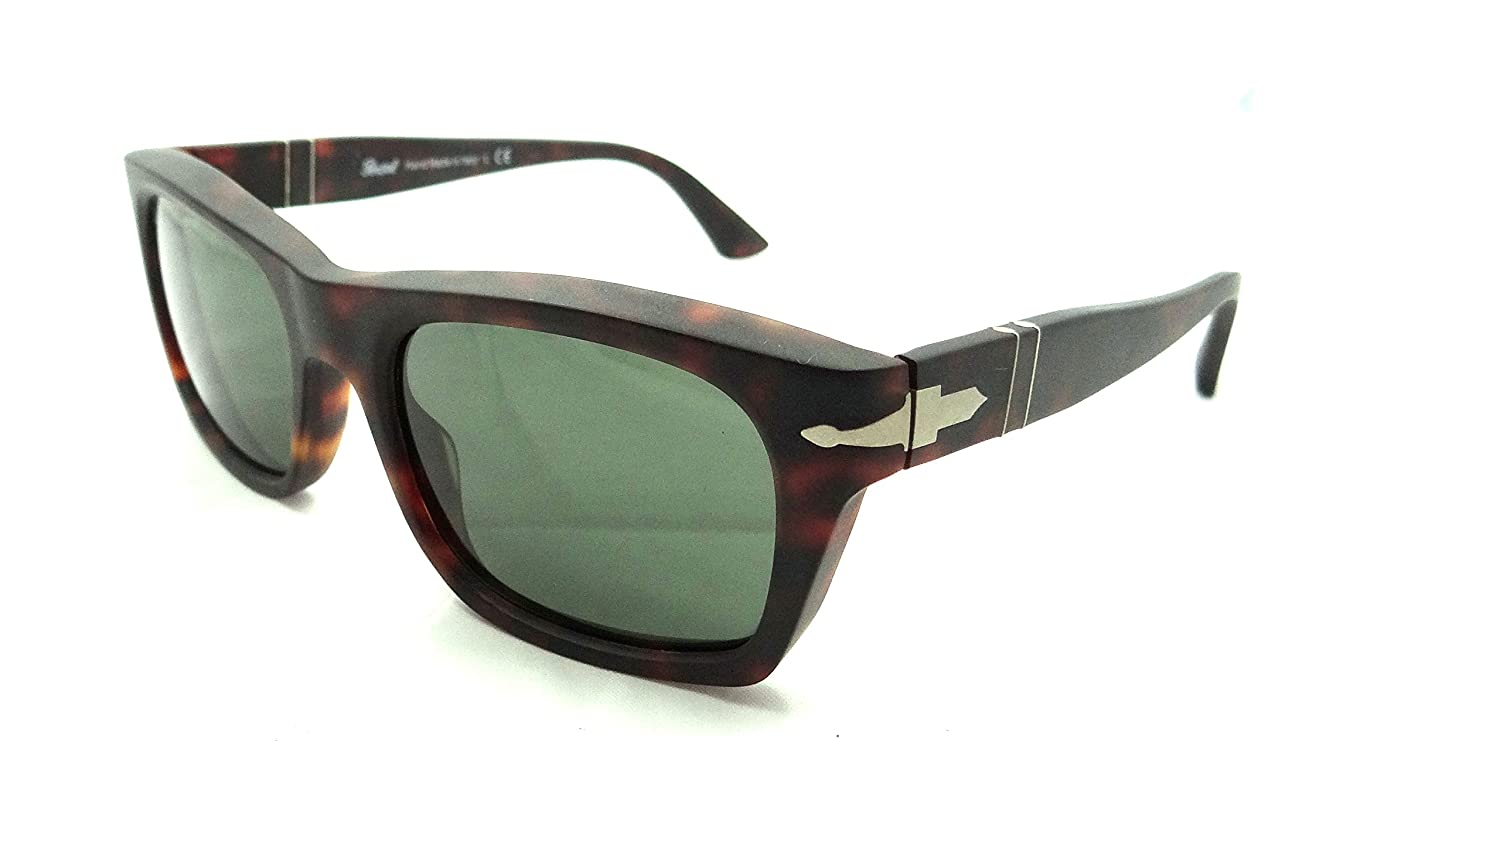 69a89c4e8d Amazon.com  Persol Sunglasses 3065 S 9001 31 52x20 Tortoise   Grey Green  Lens Made in Italy  Clothing